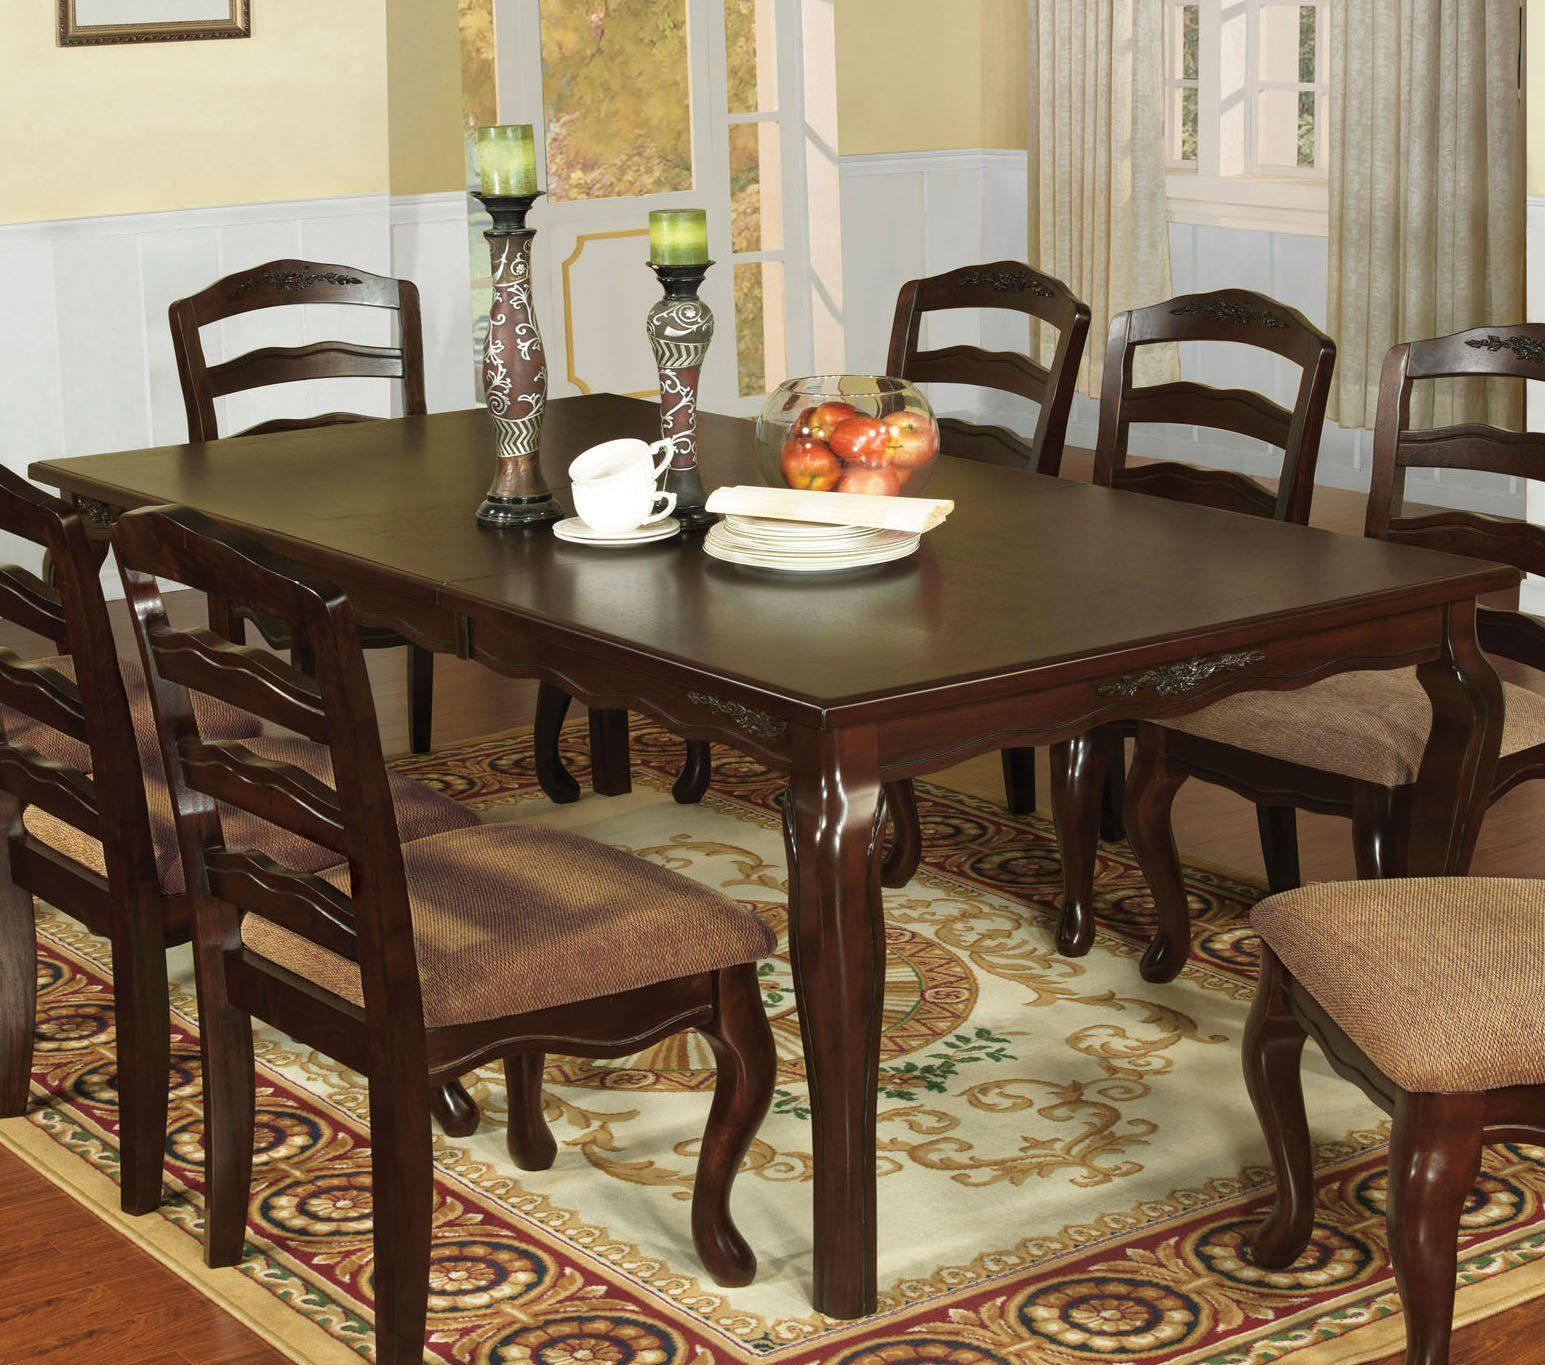 Furniture Of America Townsville Dark Walnut Wood Finish 78 Inch Dining Table Dining Table Dining Table Sizes Dining Table Chairs